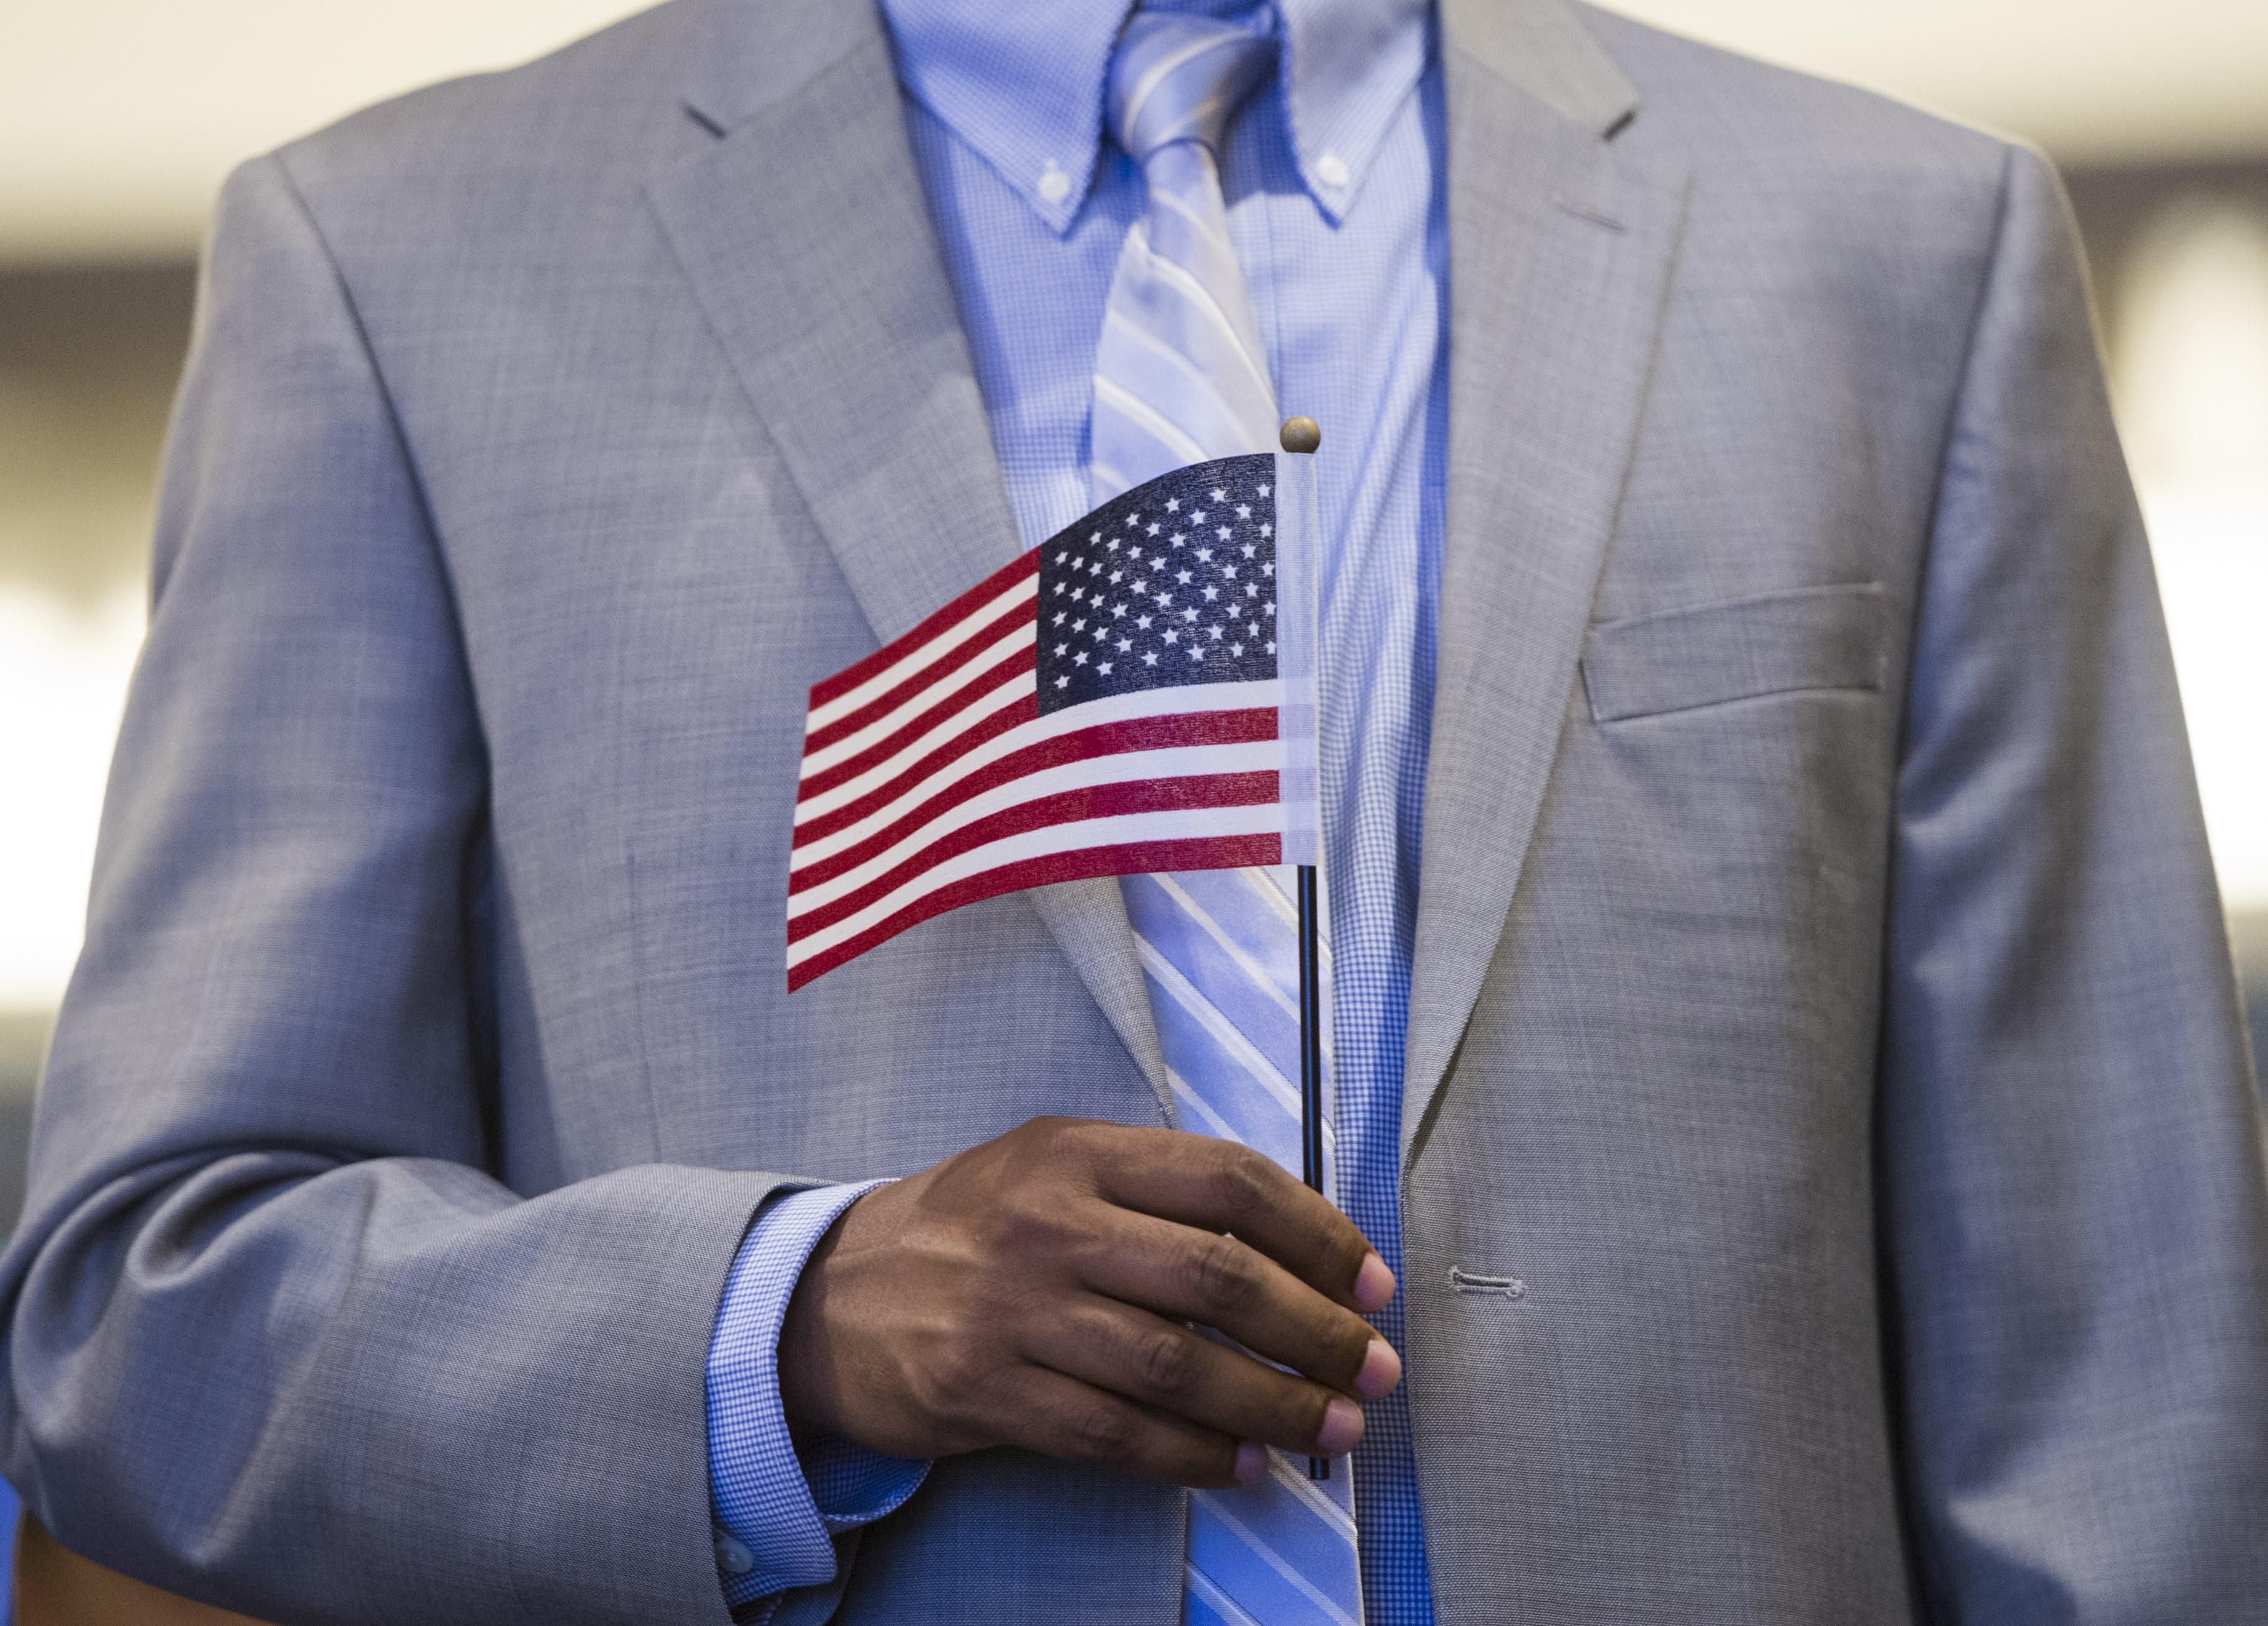 A man holds an American flag prior to taking the citizenship oath to become a U.S. citizen during a naturalization ceremony in Alexandria, Virginia in May.